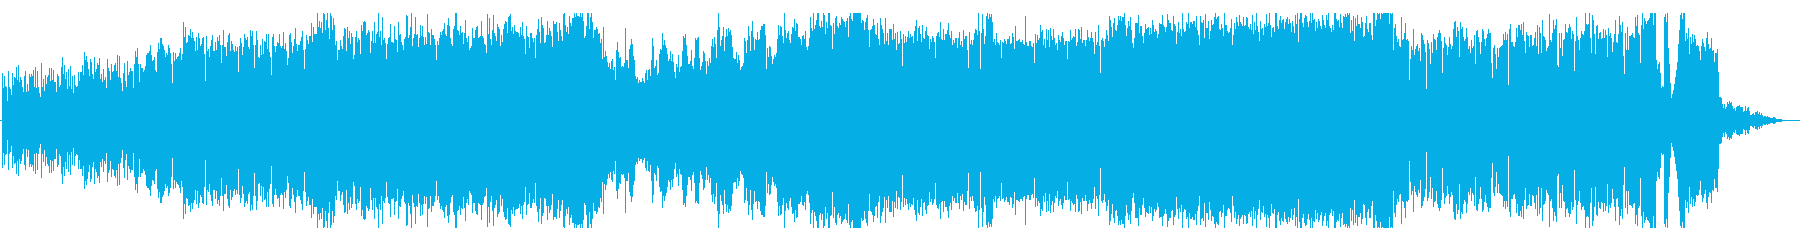 Oni's reproduced waveform